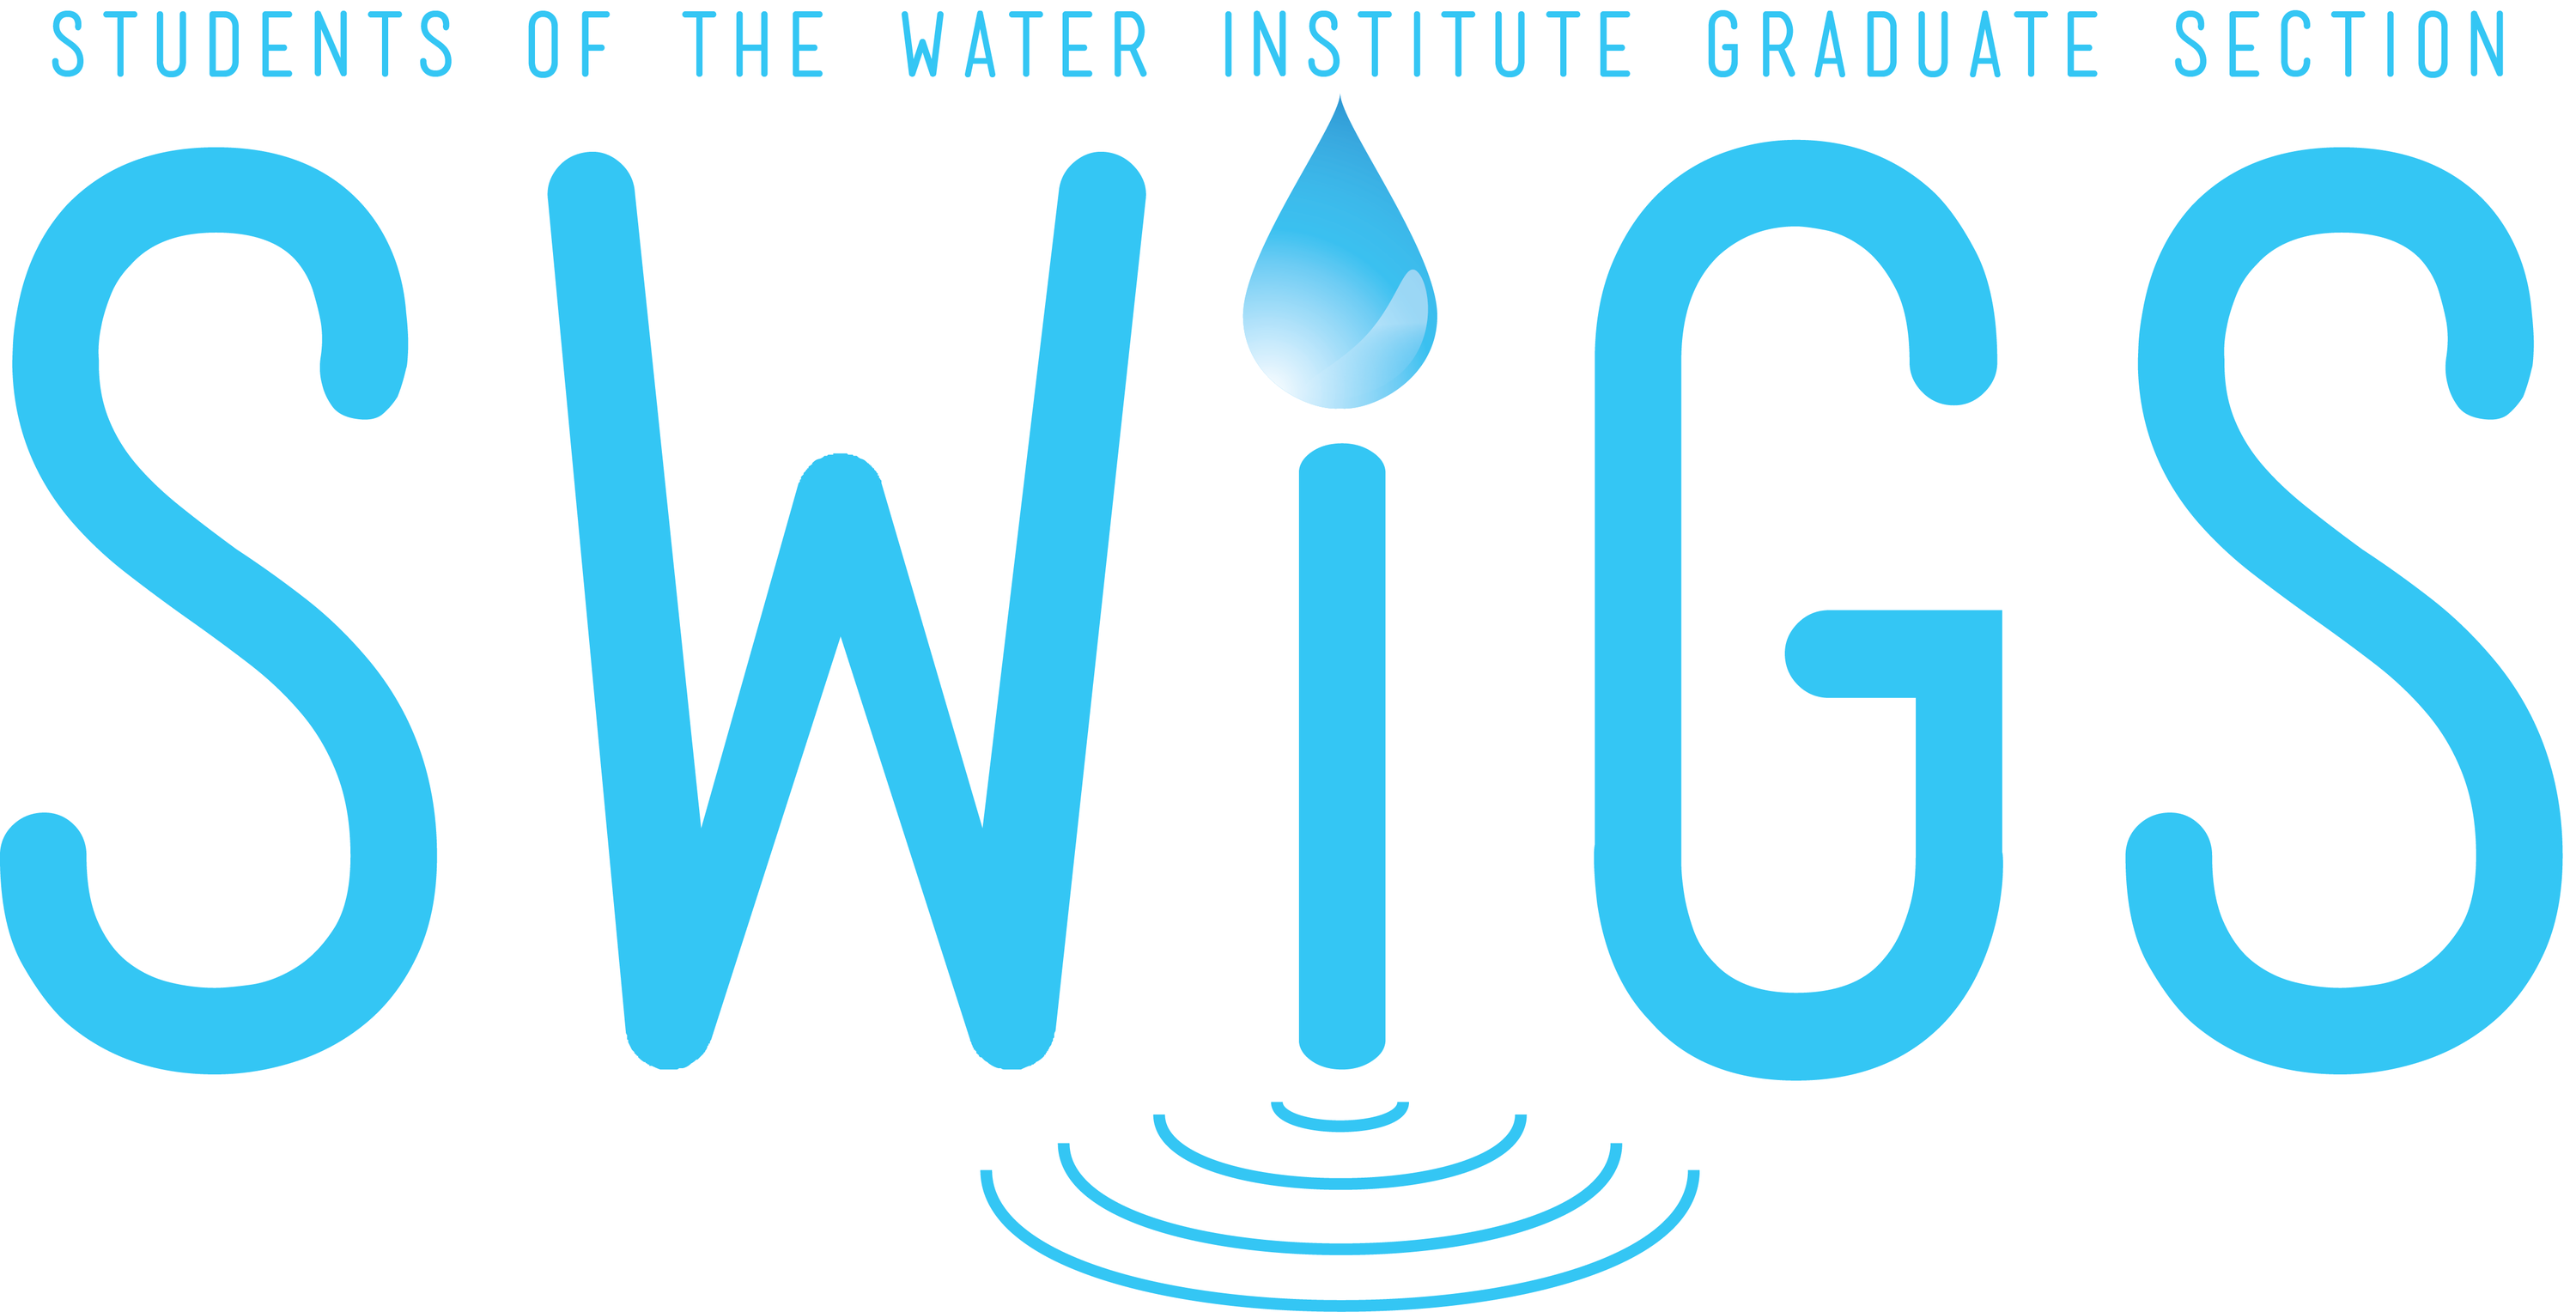 Students of the Water Institute Graduate Section (SWIGS) logo